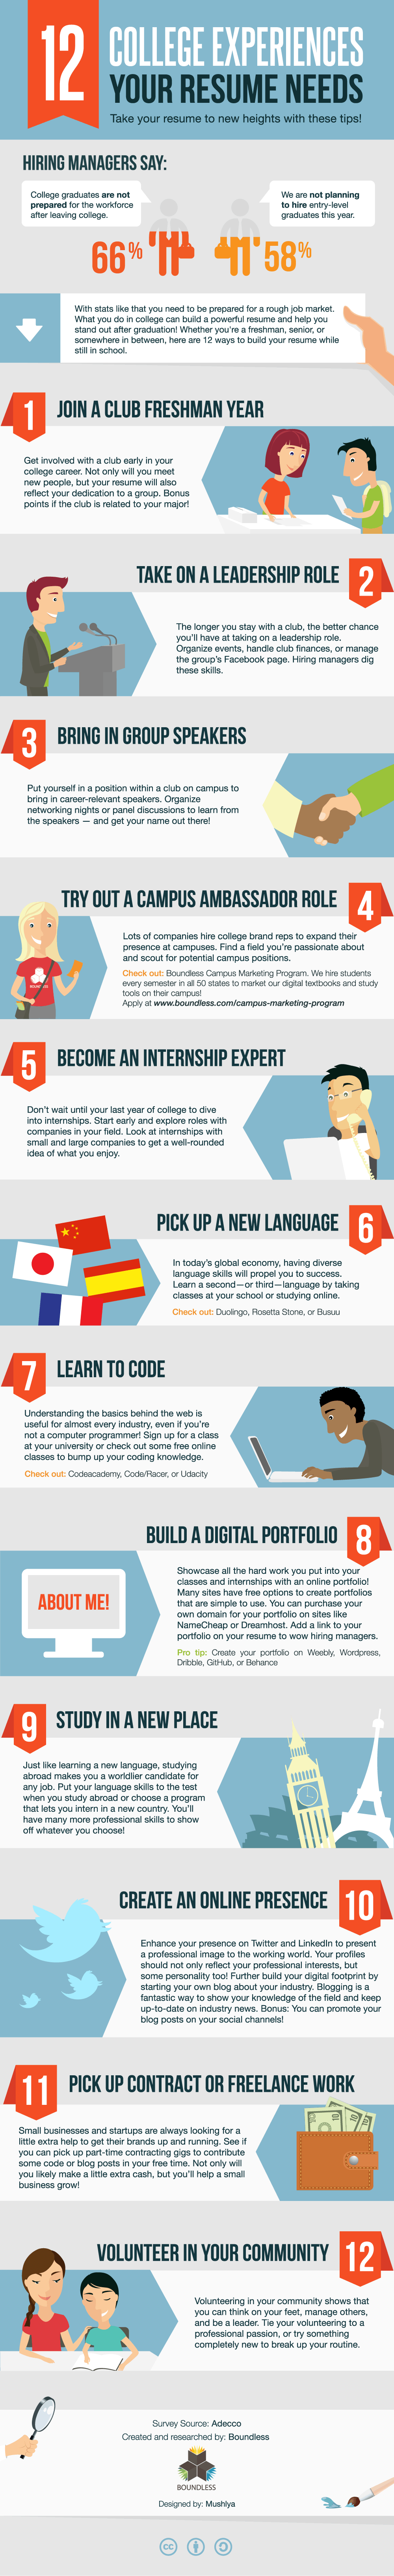 12 College Experiences Every Resume Needs [INFOGRAPHIC]